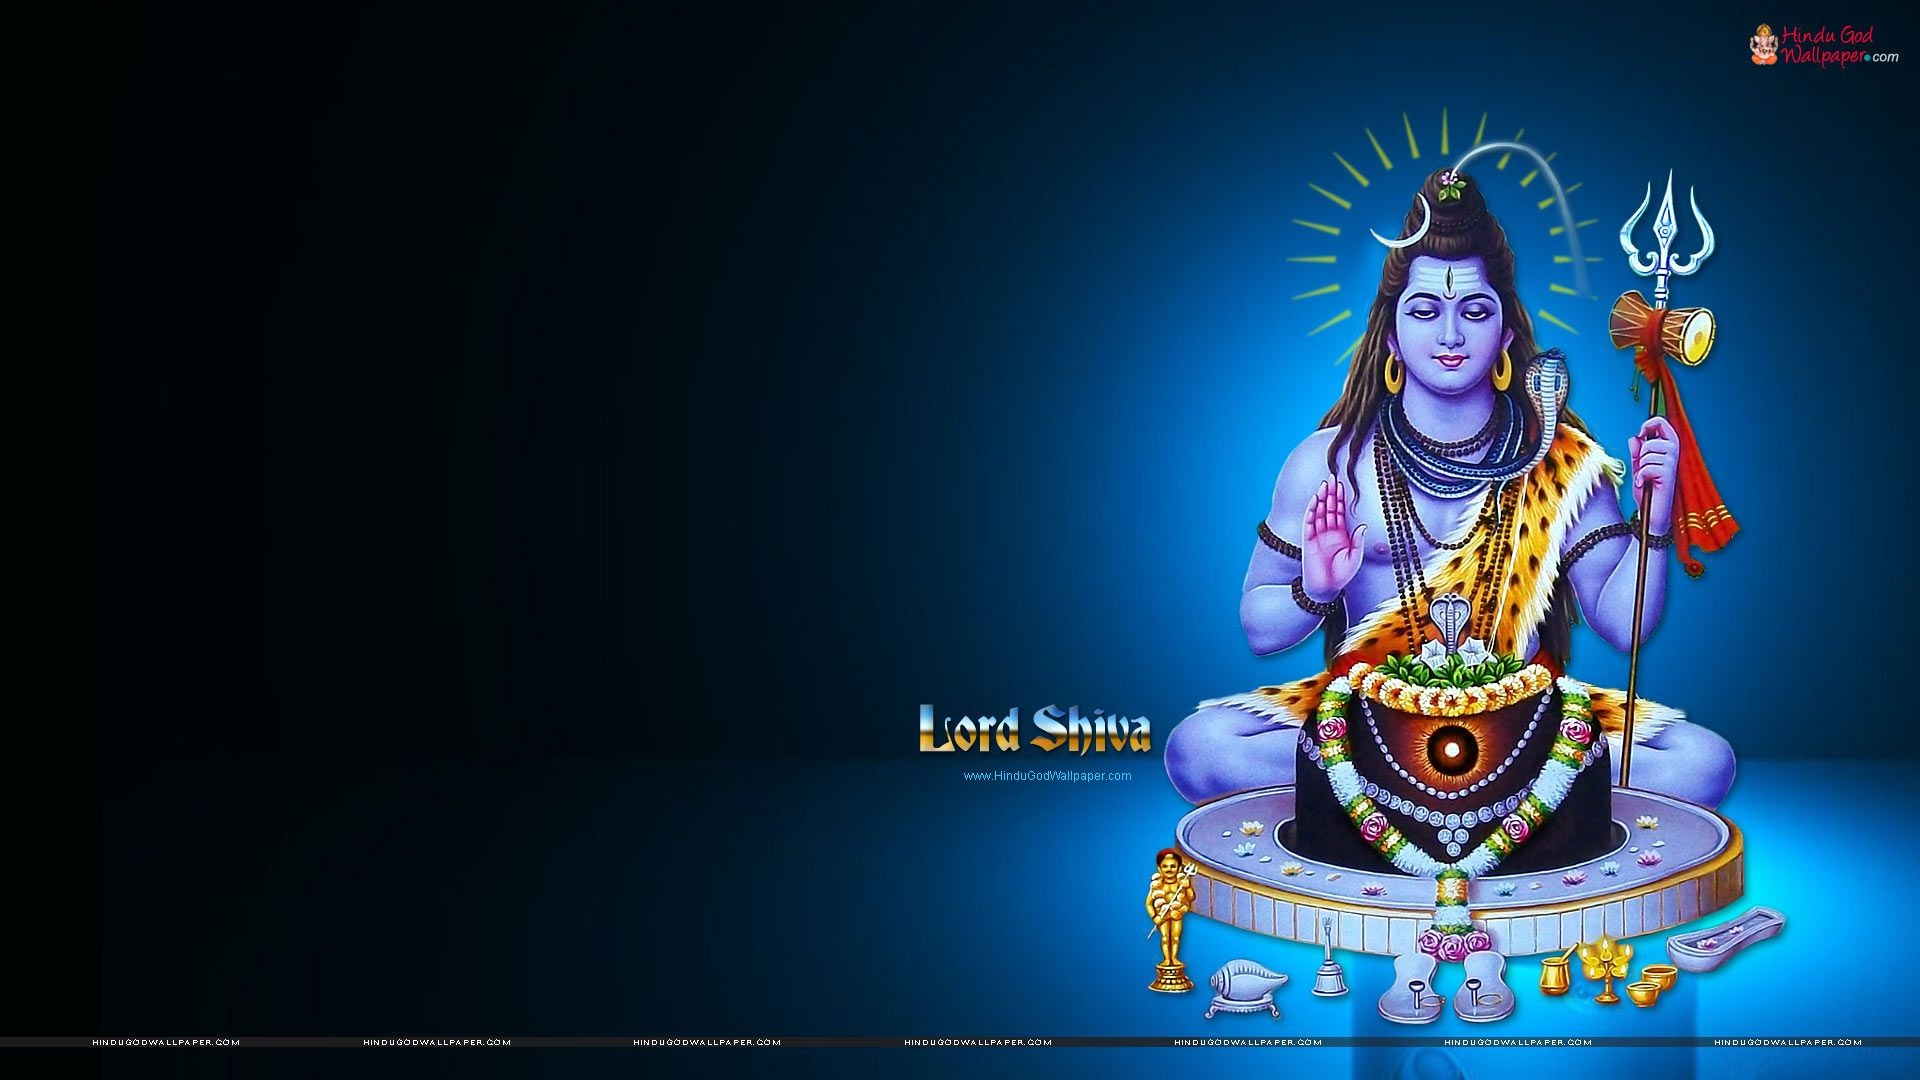 Lord Shiva Wallpapers Hd 71 Images